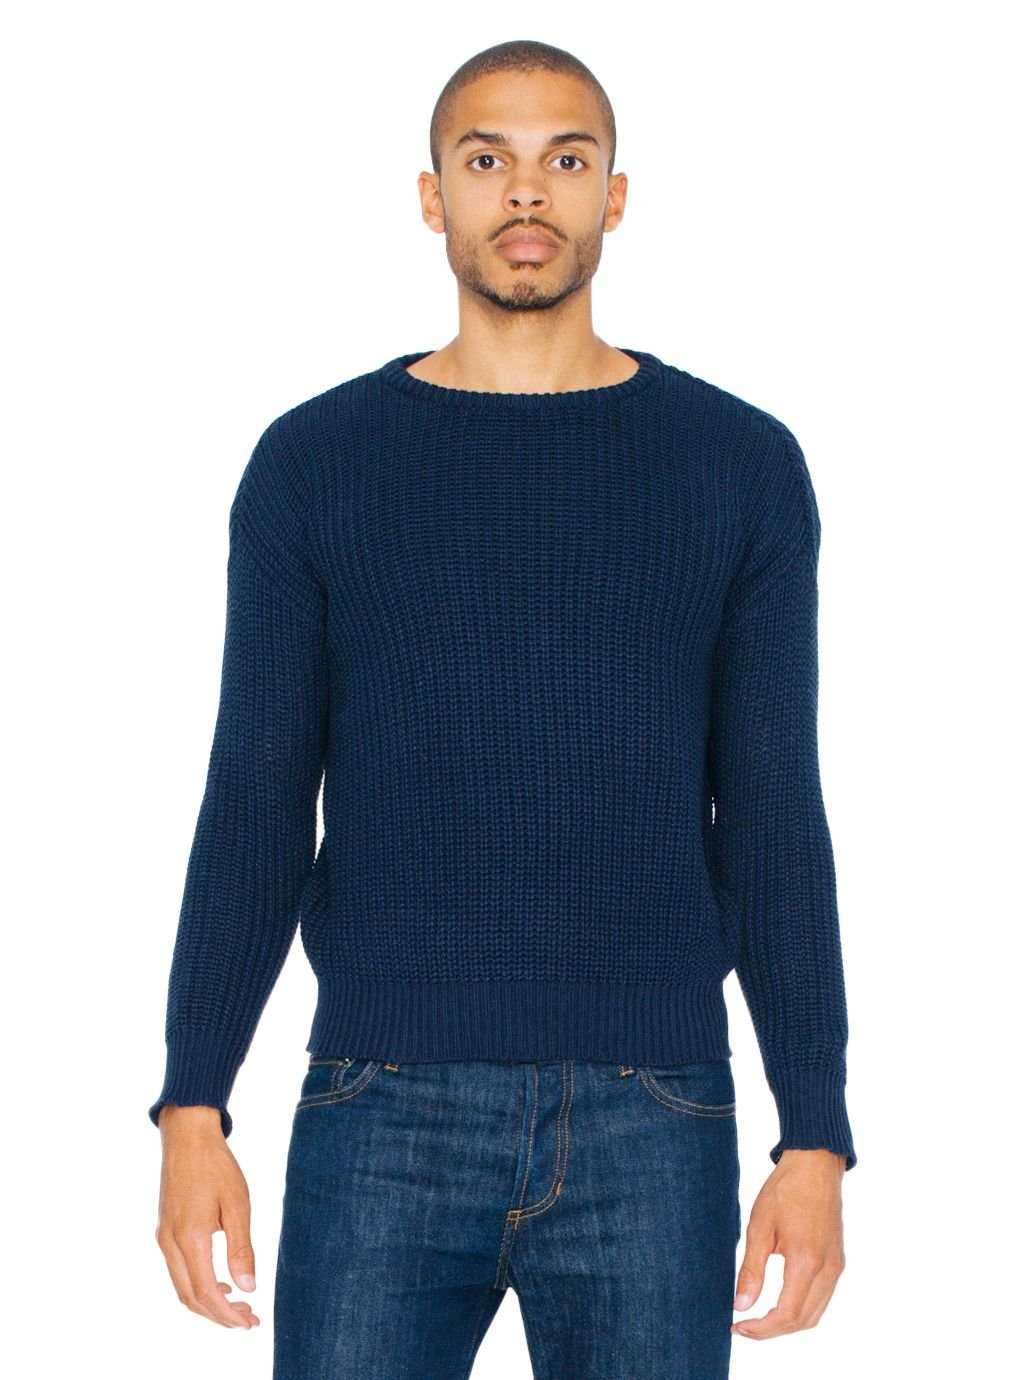 American Apparel Men's Fisherman's Pullover Sweater, Navy, Large